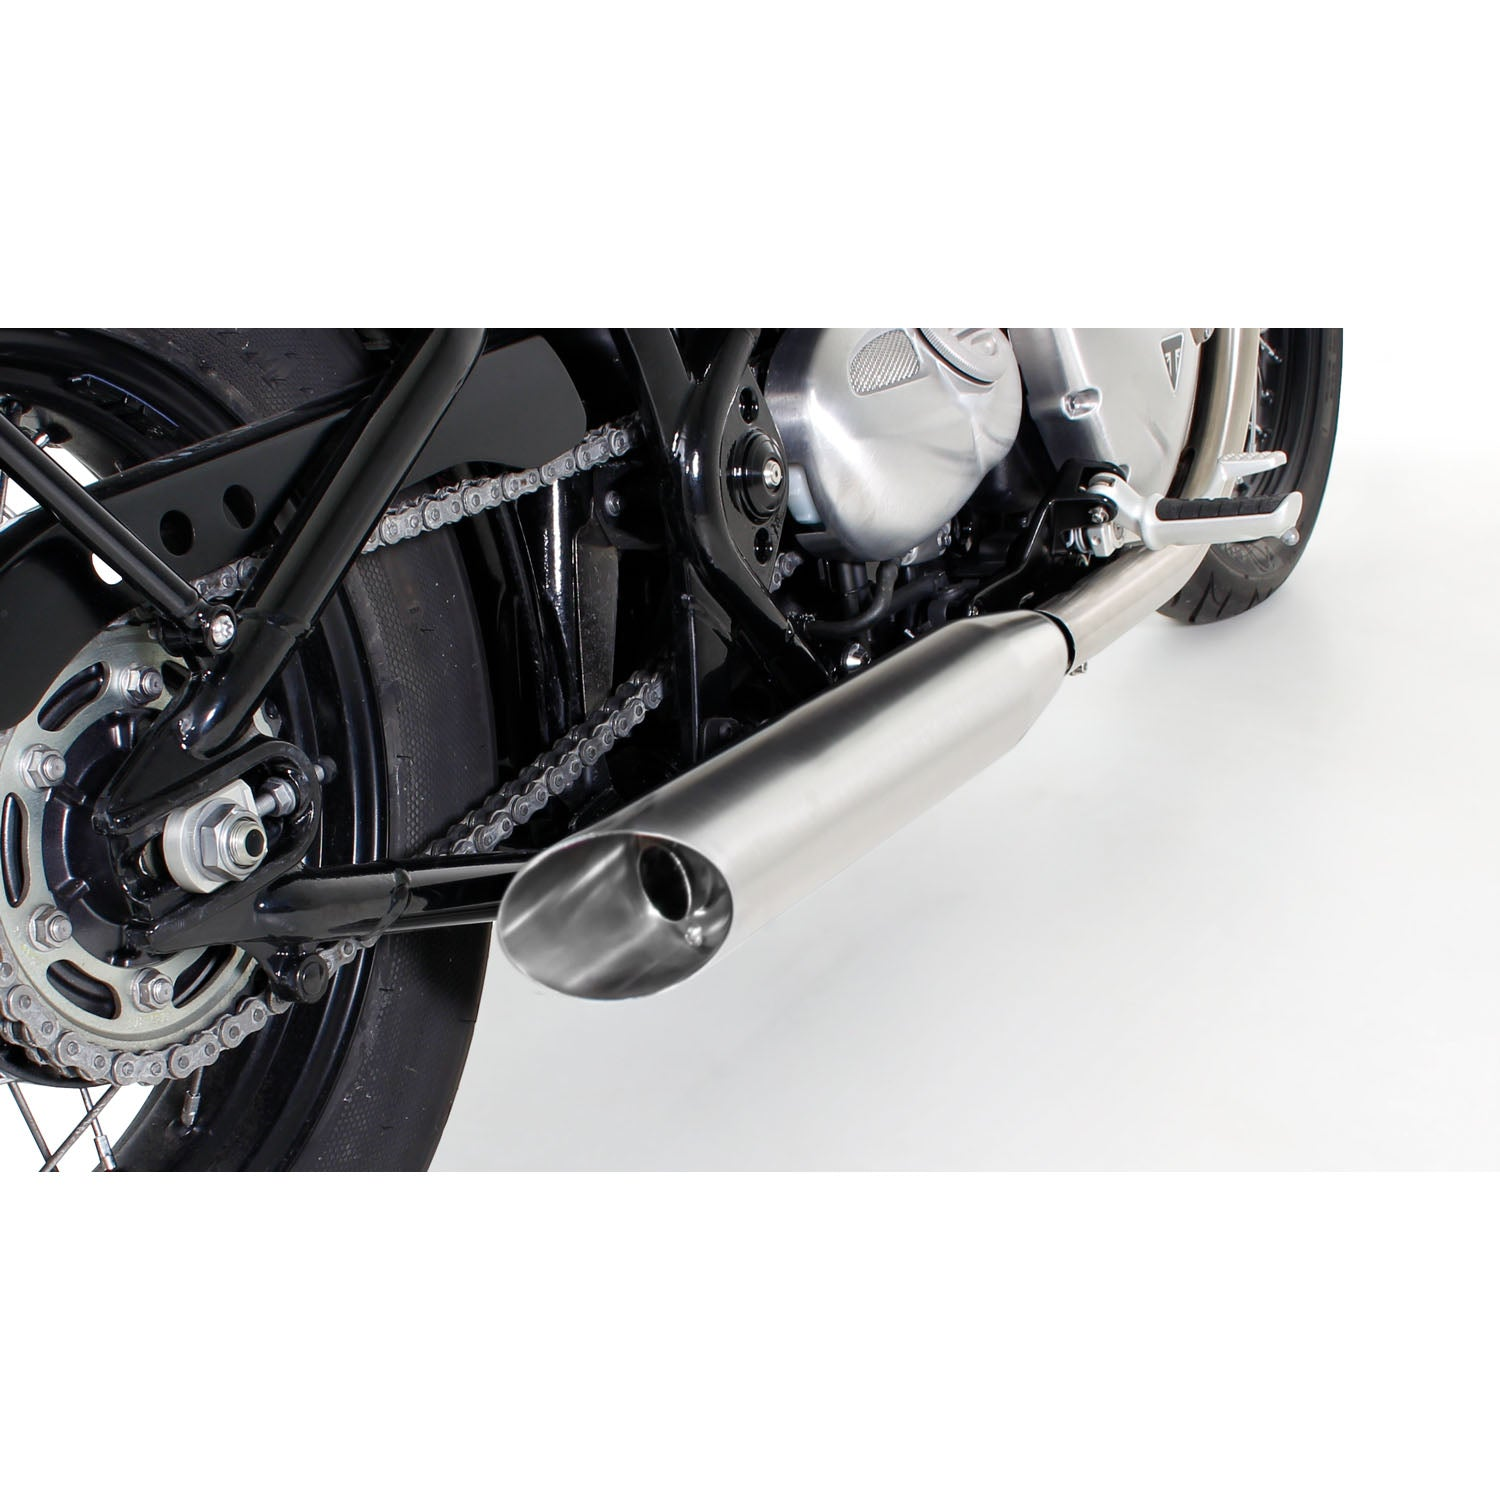 Custom Stainless Steel Matt Slash-Cut Exhaust - Triumph Bonneville Bobber 17-20